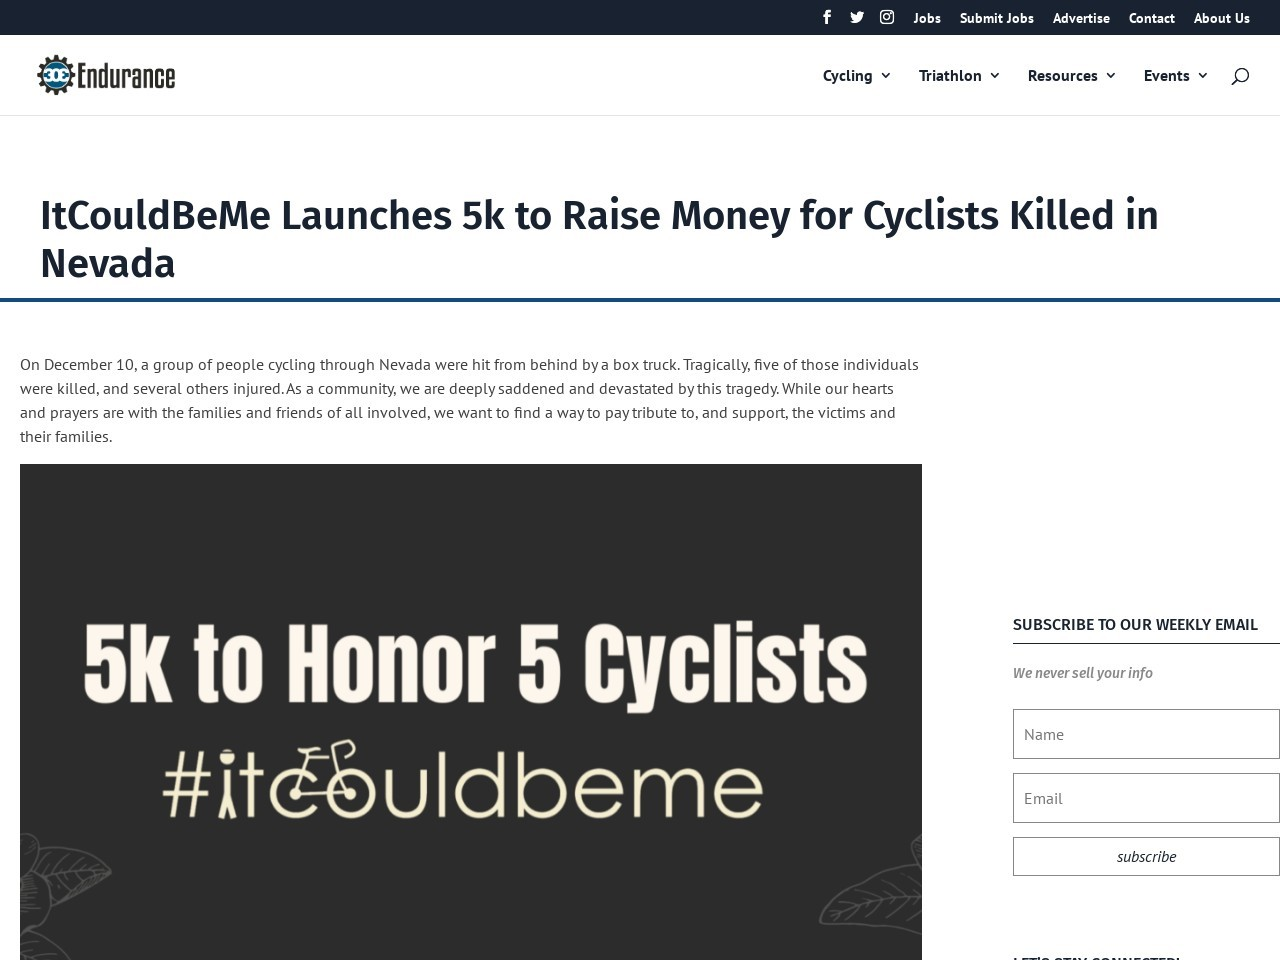 ItCouldBeMe Launches 5k to Raise Money for Cyclists Killed in Nevada